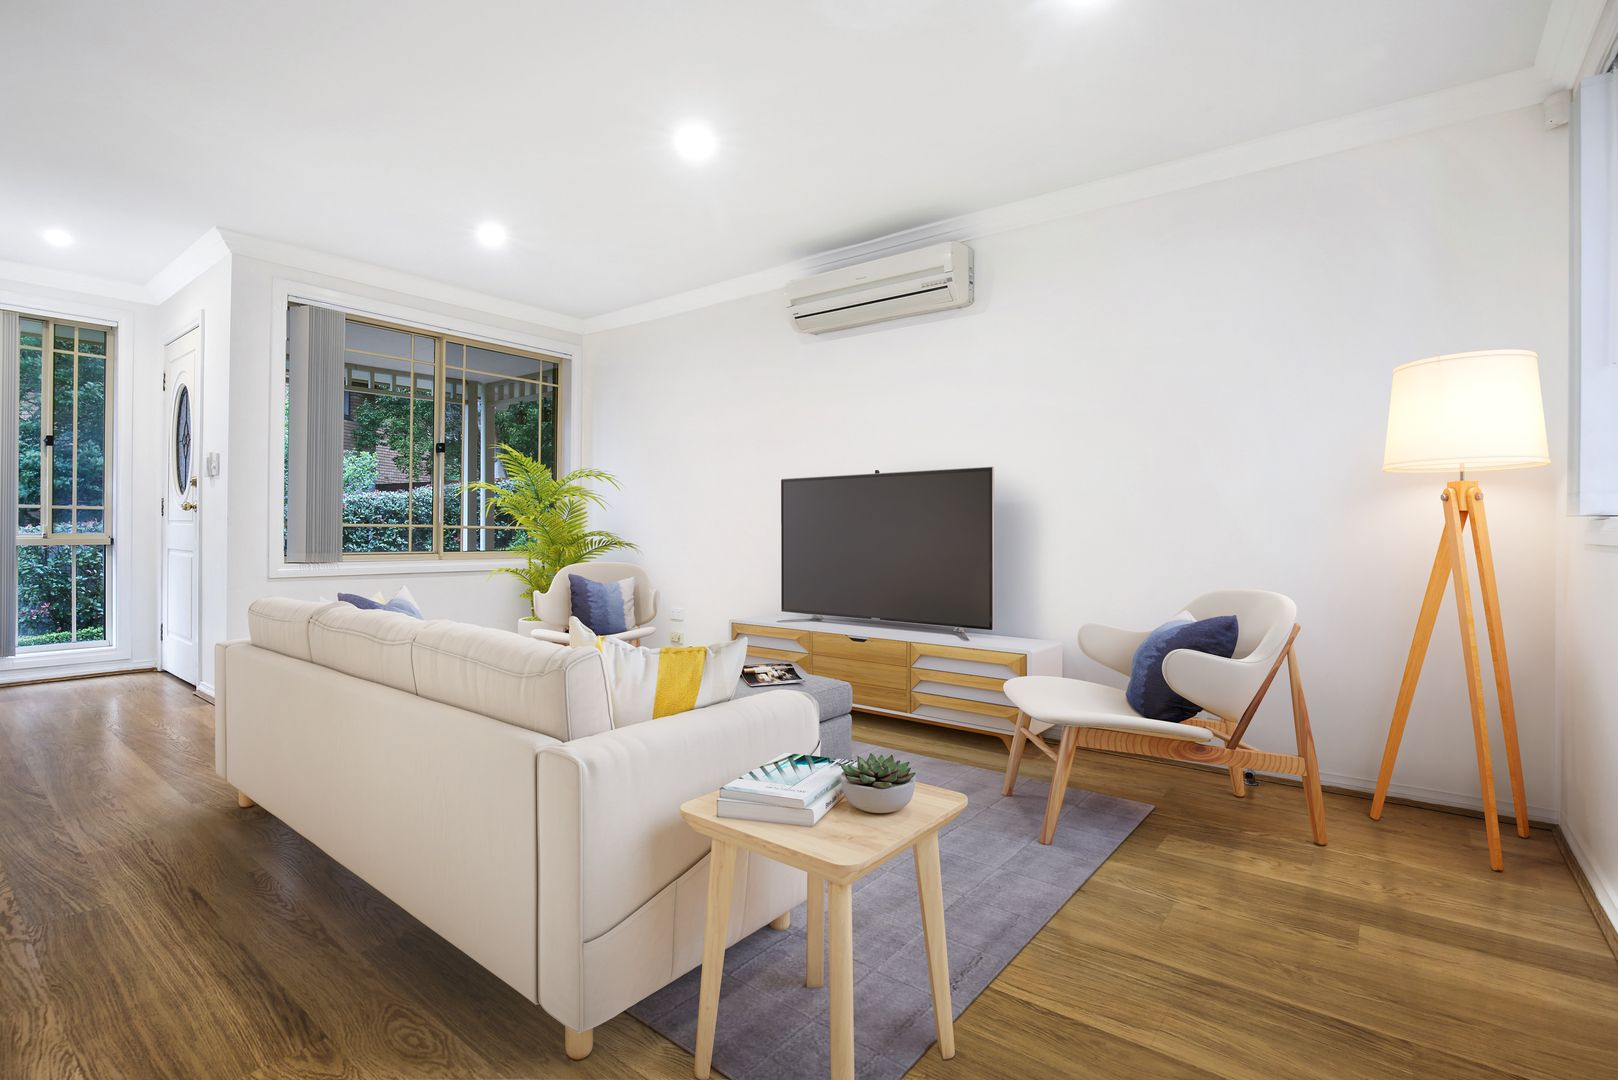 2/2 Parsons Street, West Wollongong NSW 2500 - Villa For